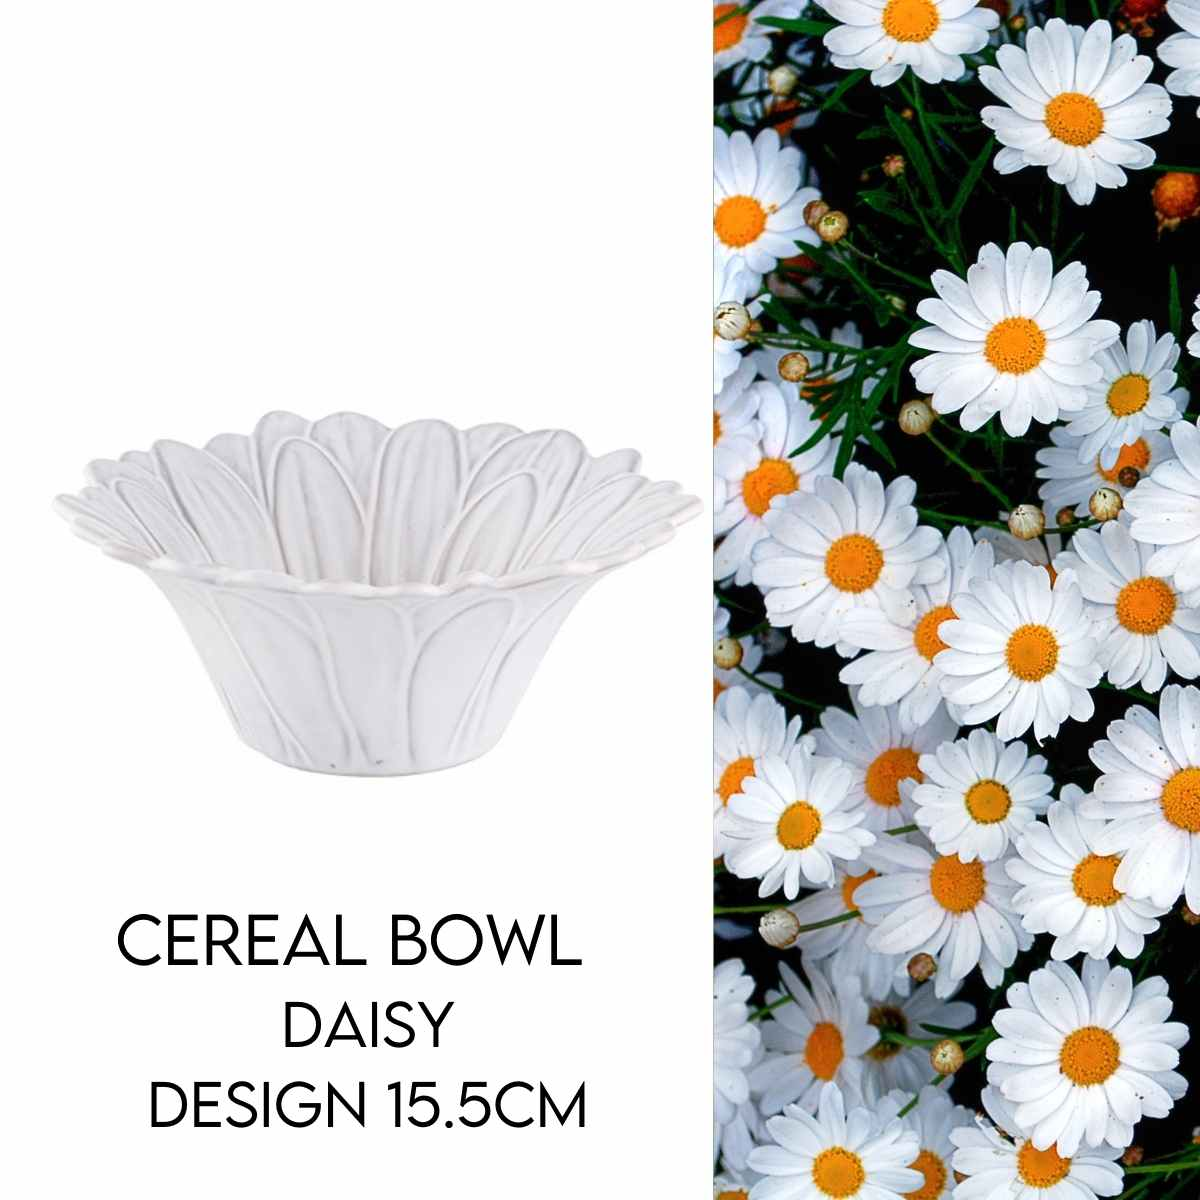 Hostaro Tableware Maria Flor daisy cereal bowl